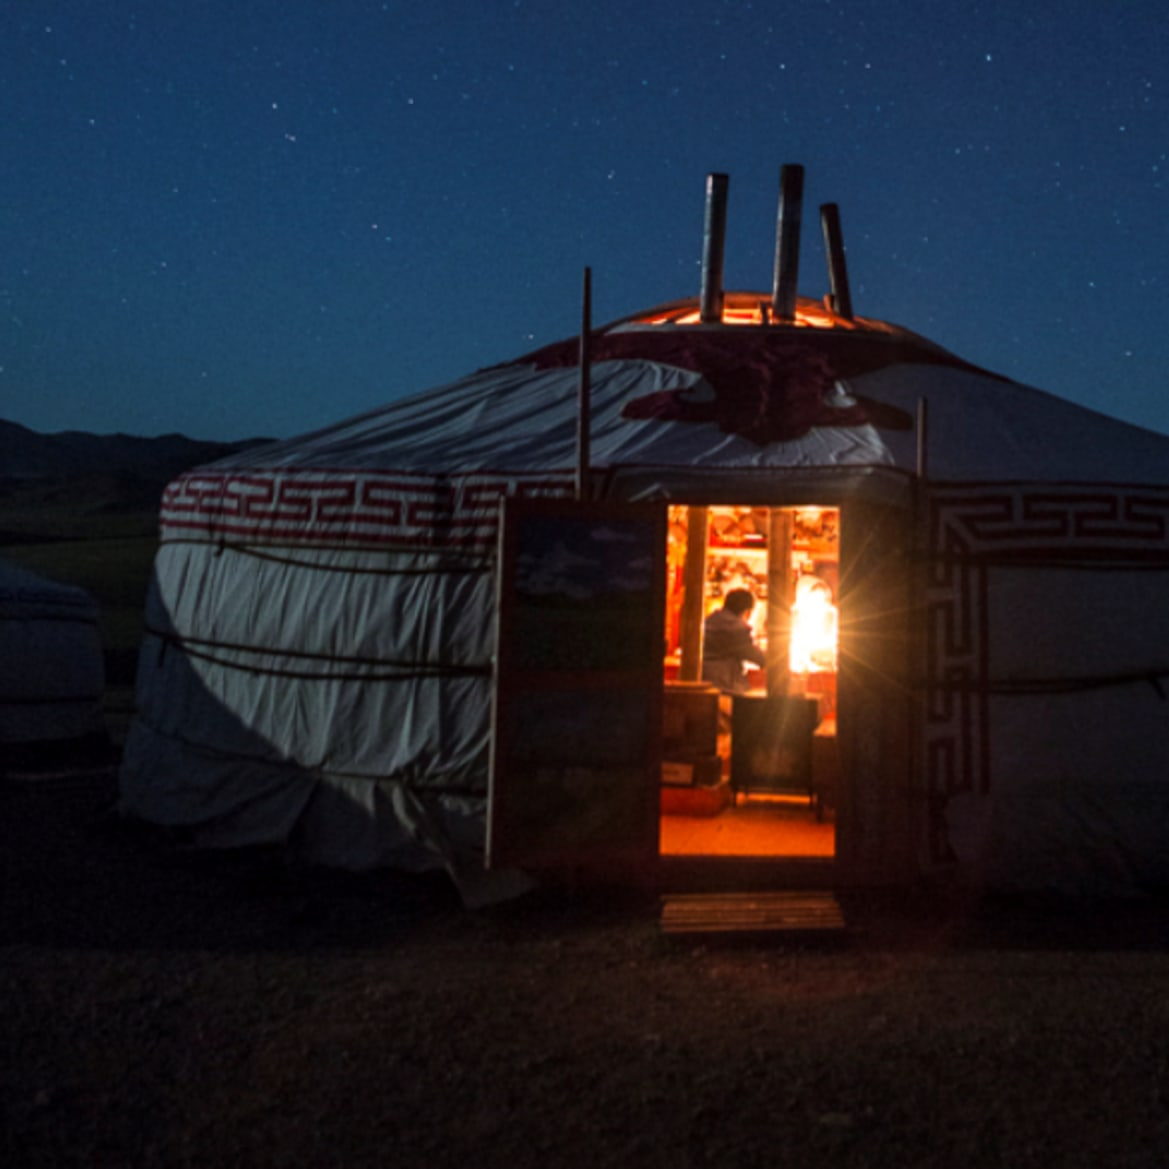 Night Time Lights in Ger - The Pavilions Mongolia